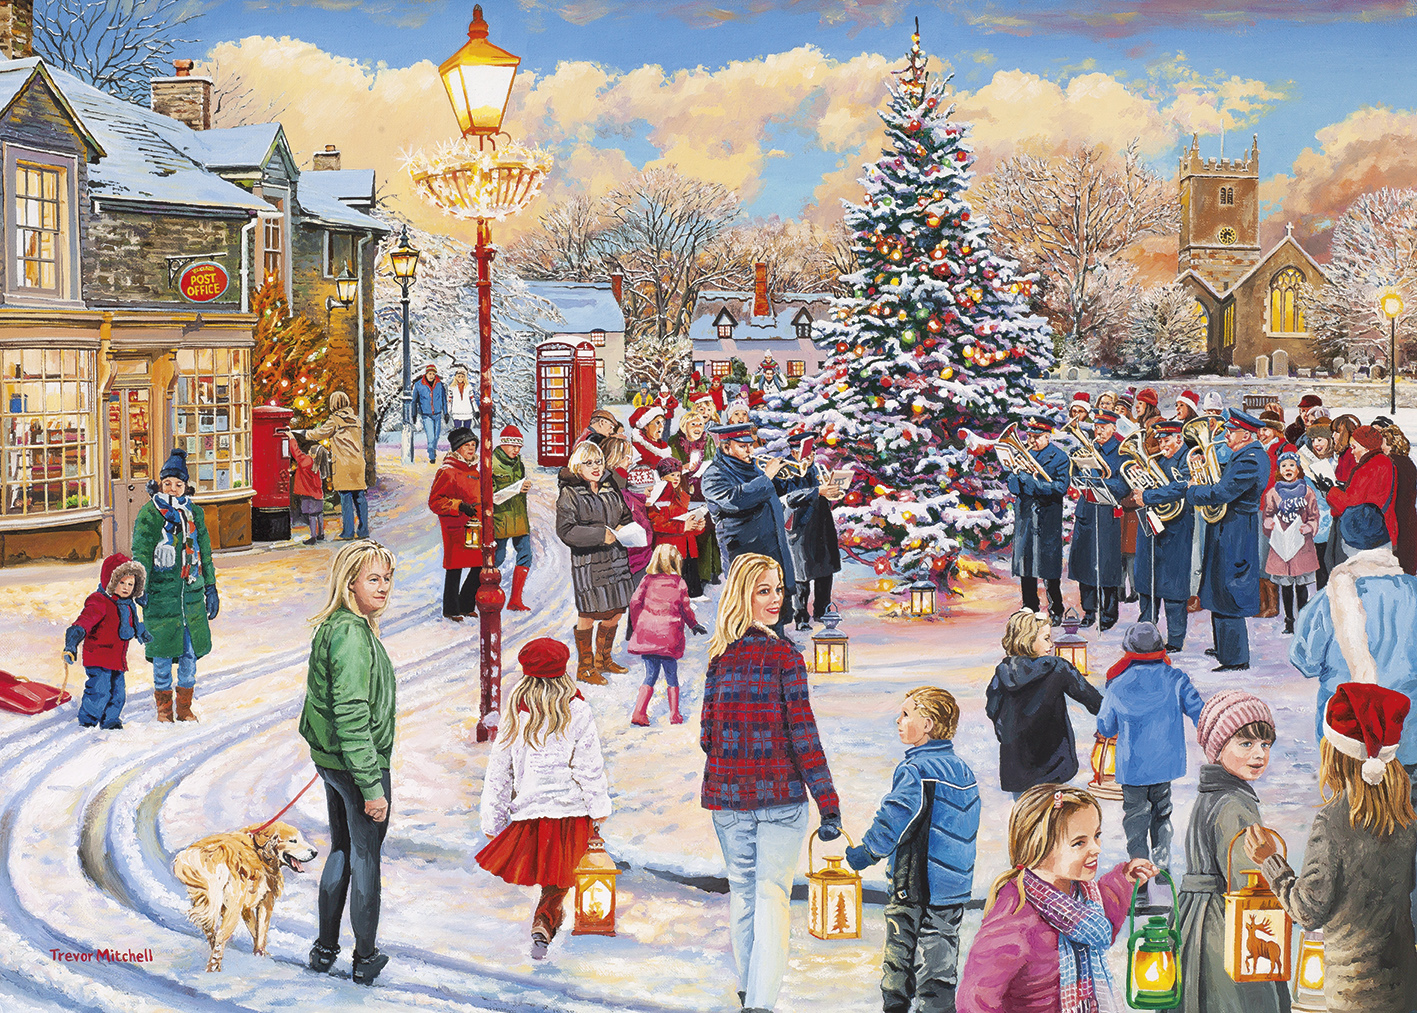 gibsons-christmas-chorus-1000-teile-puzzle-gibsons-g6275